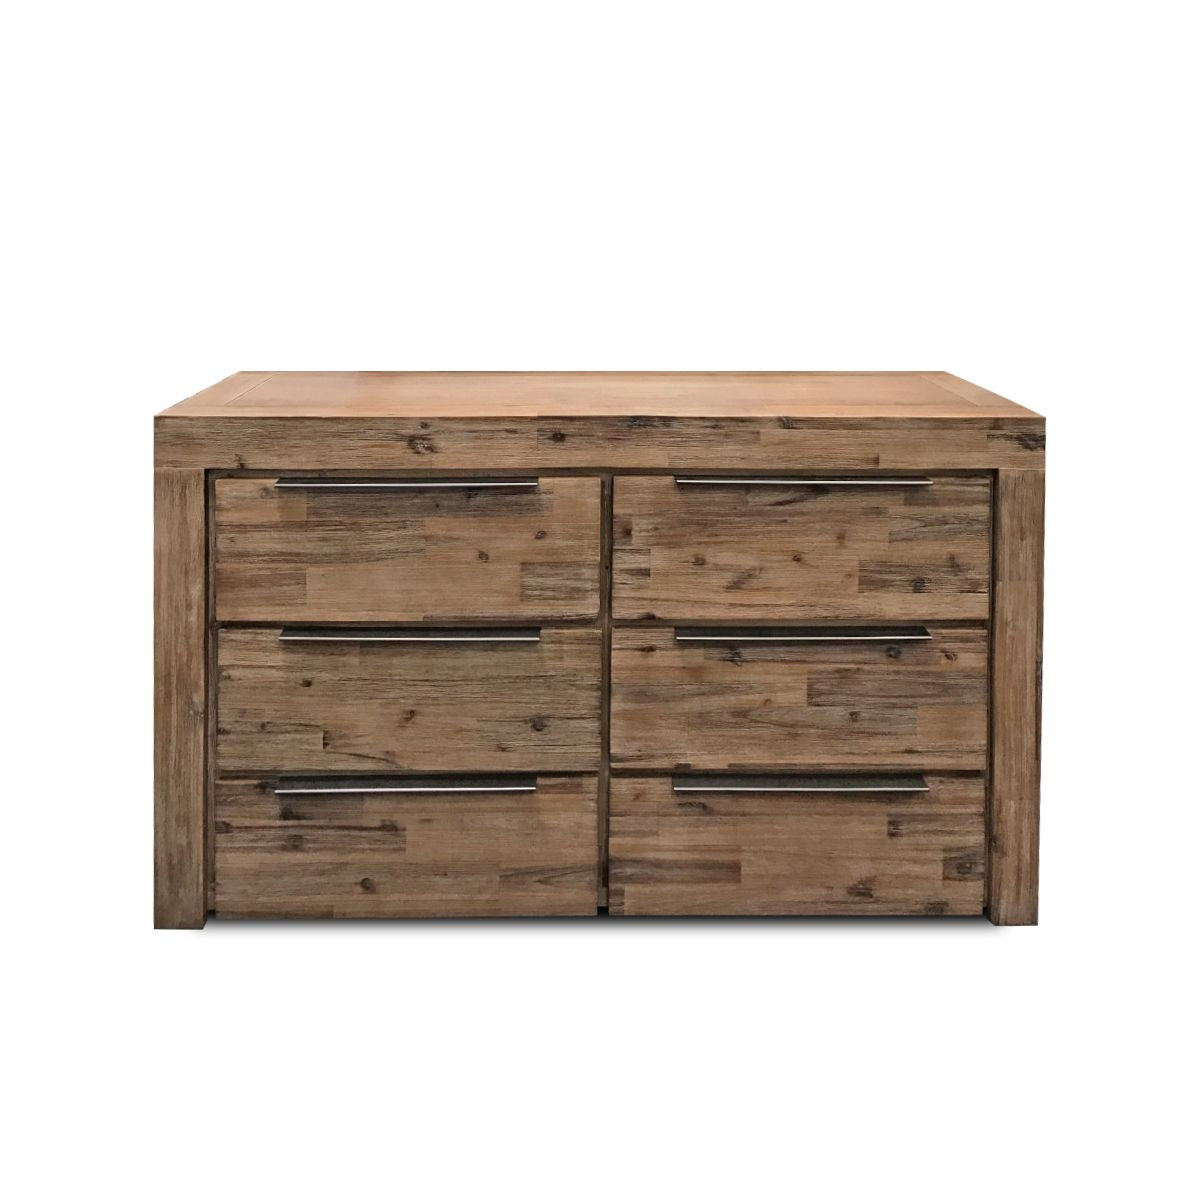 The Cape Dresser - 6 Drawer